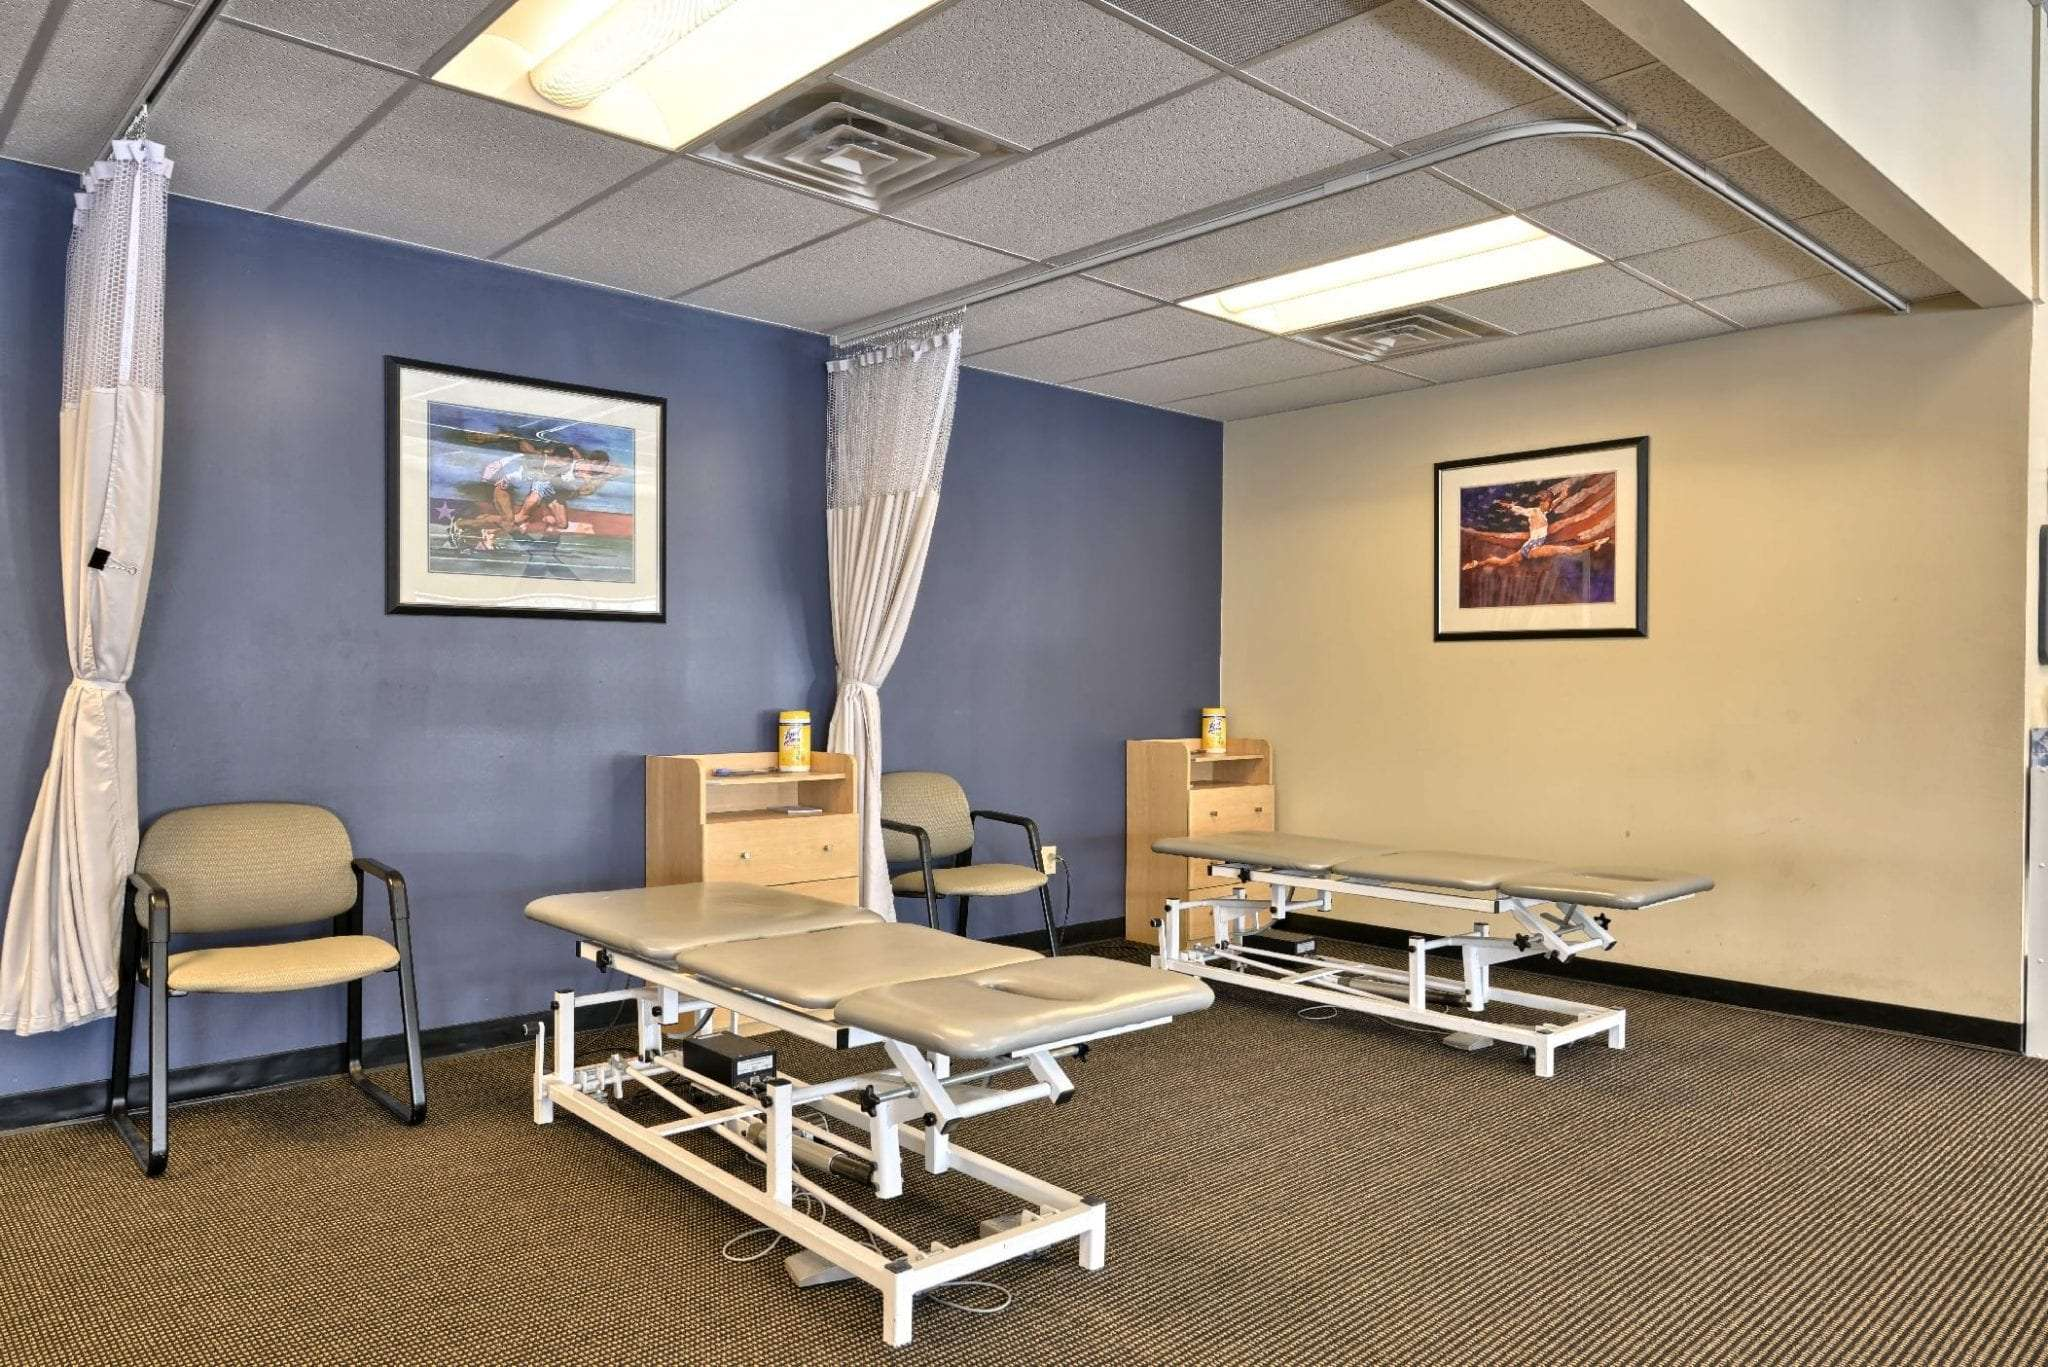 Here is an image of stretch beds used for physical therapy at our clinic in Stratham, New Hampshire.